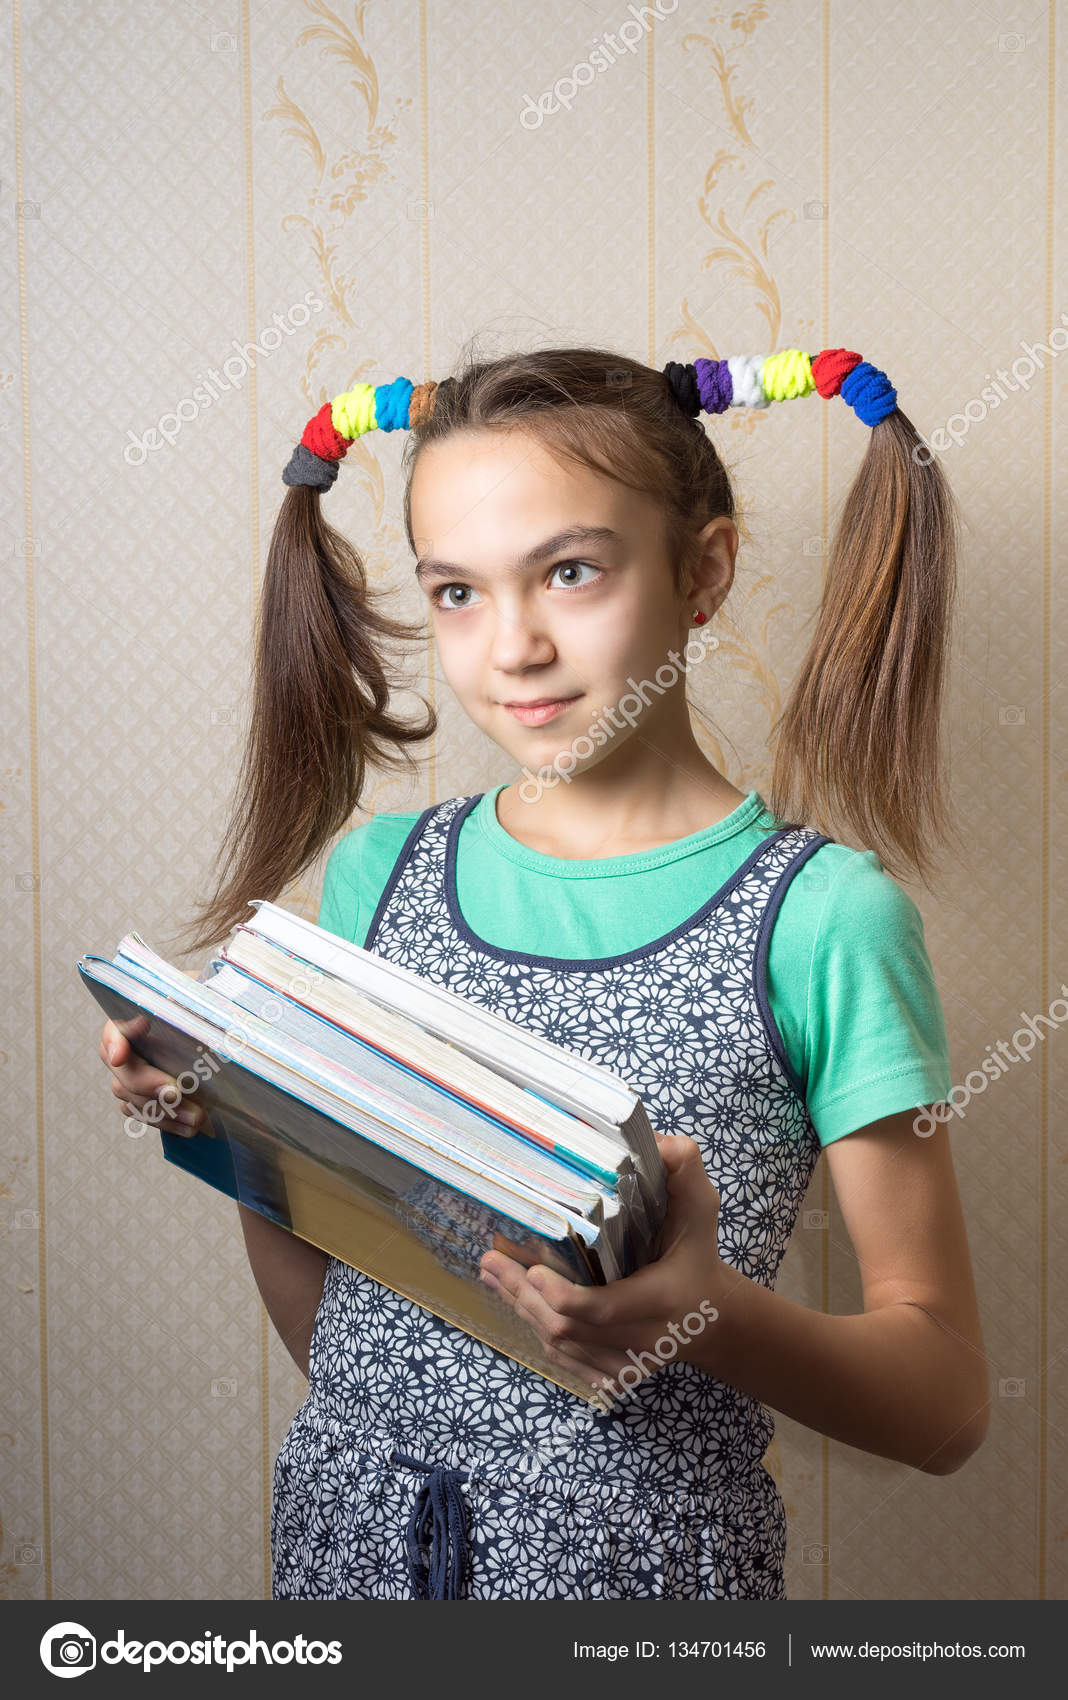 11 Year Old Girl With Funny Tails Is With A Pile Of Books